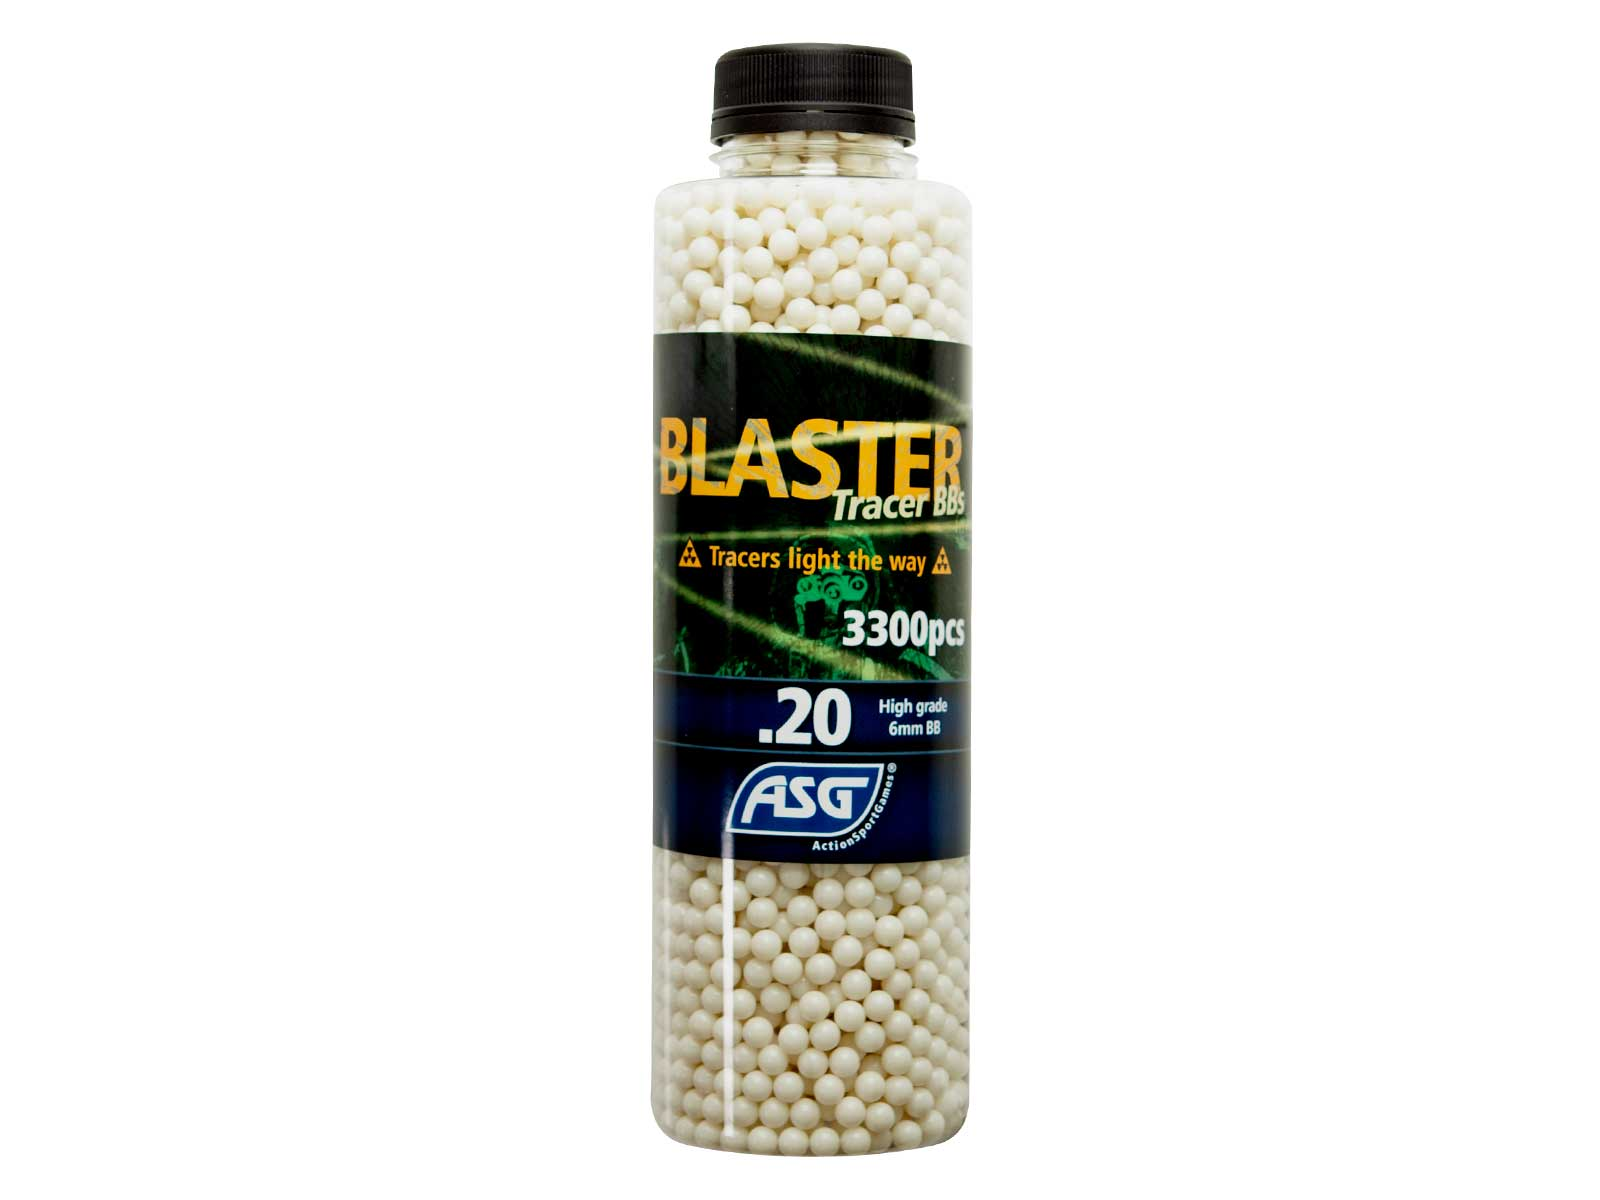 Blaster Tracer 0,20g Airsoft BB in green color -3300 pcs. in bottle product image